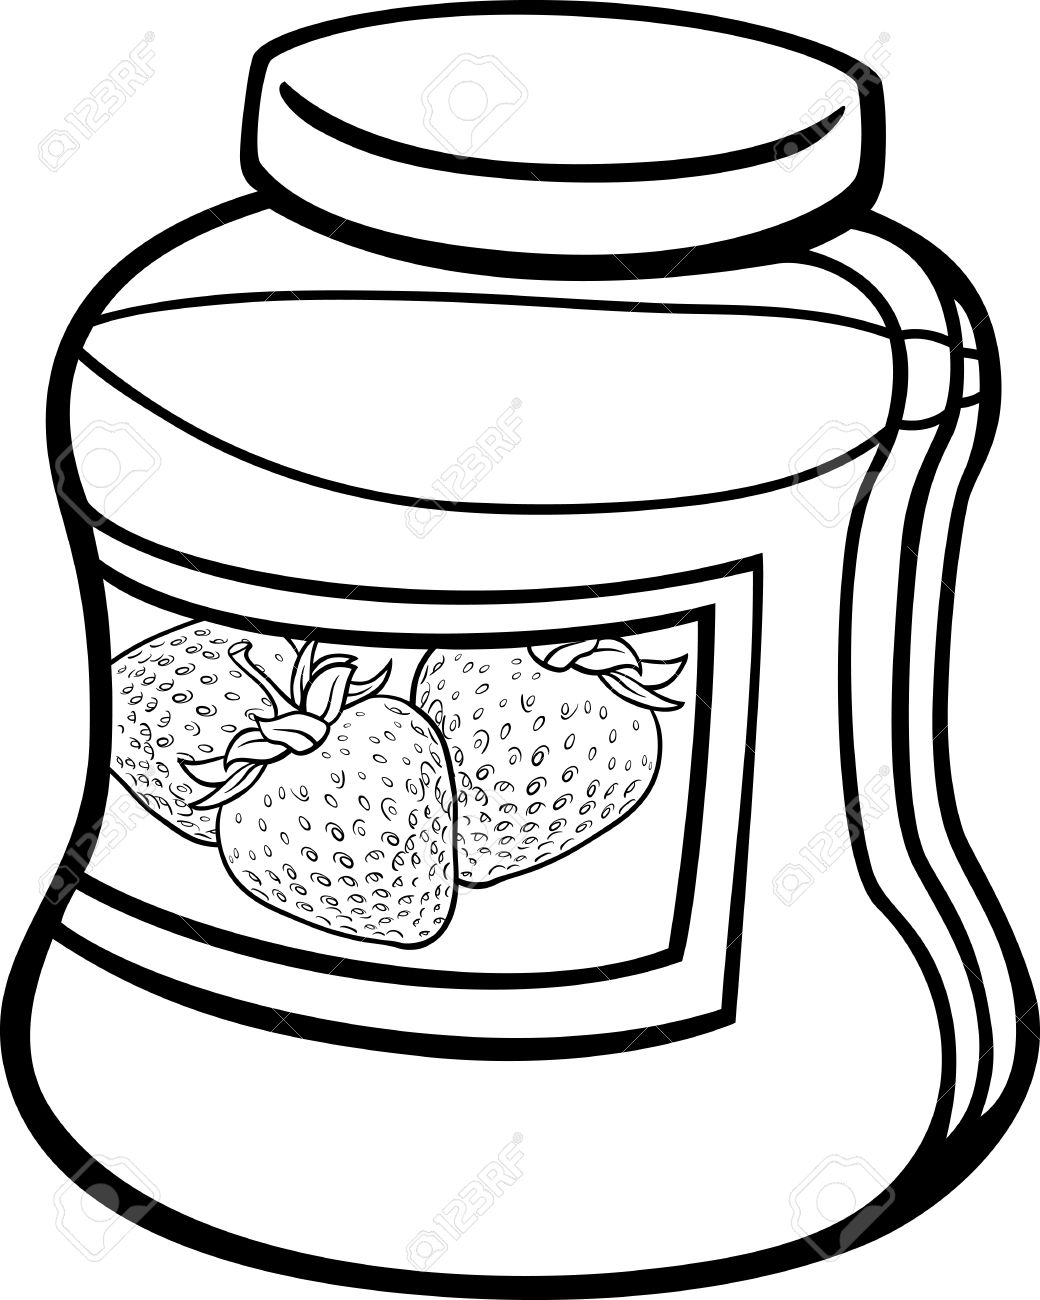 Black And White Cartoon Illustration Of Strawberry Jam In A Glass ... for Clipart Strawberry Black And White  585ifm